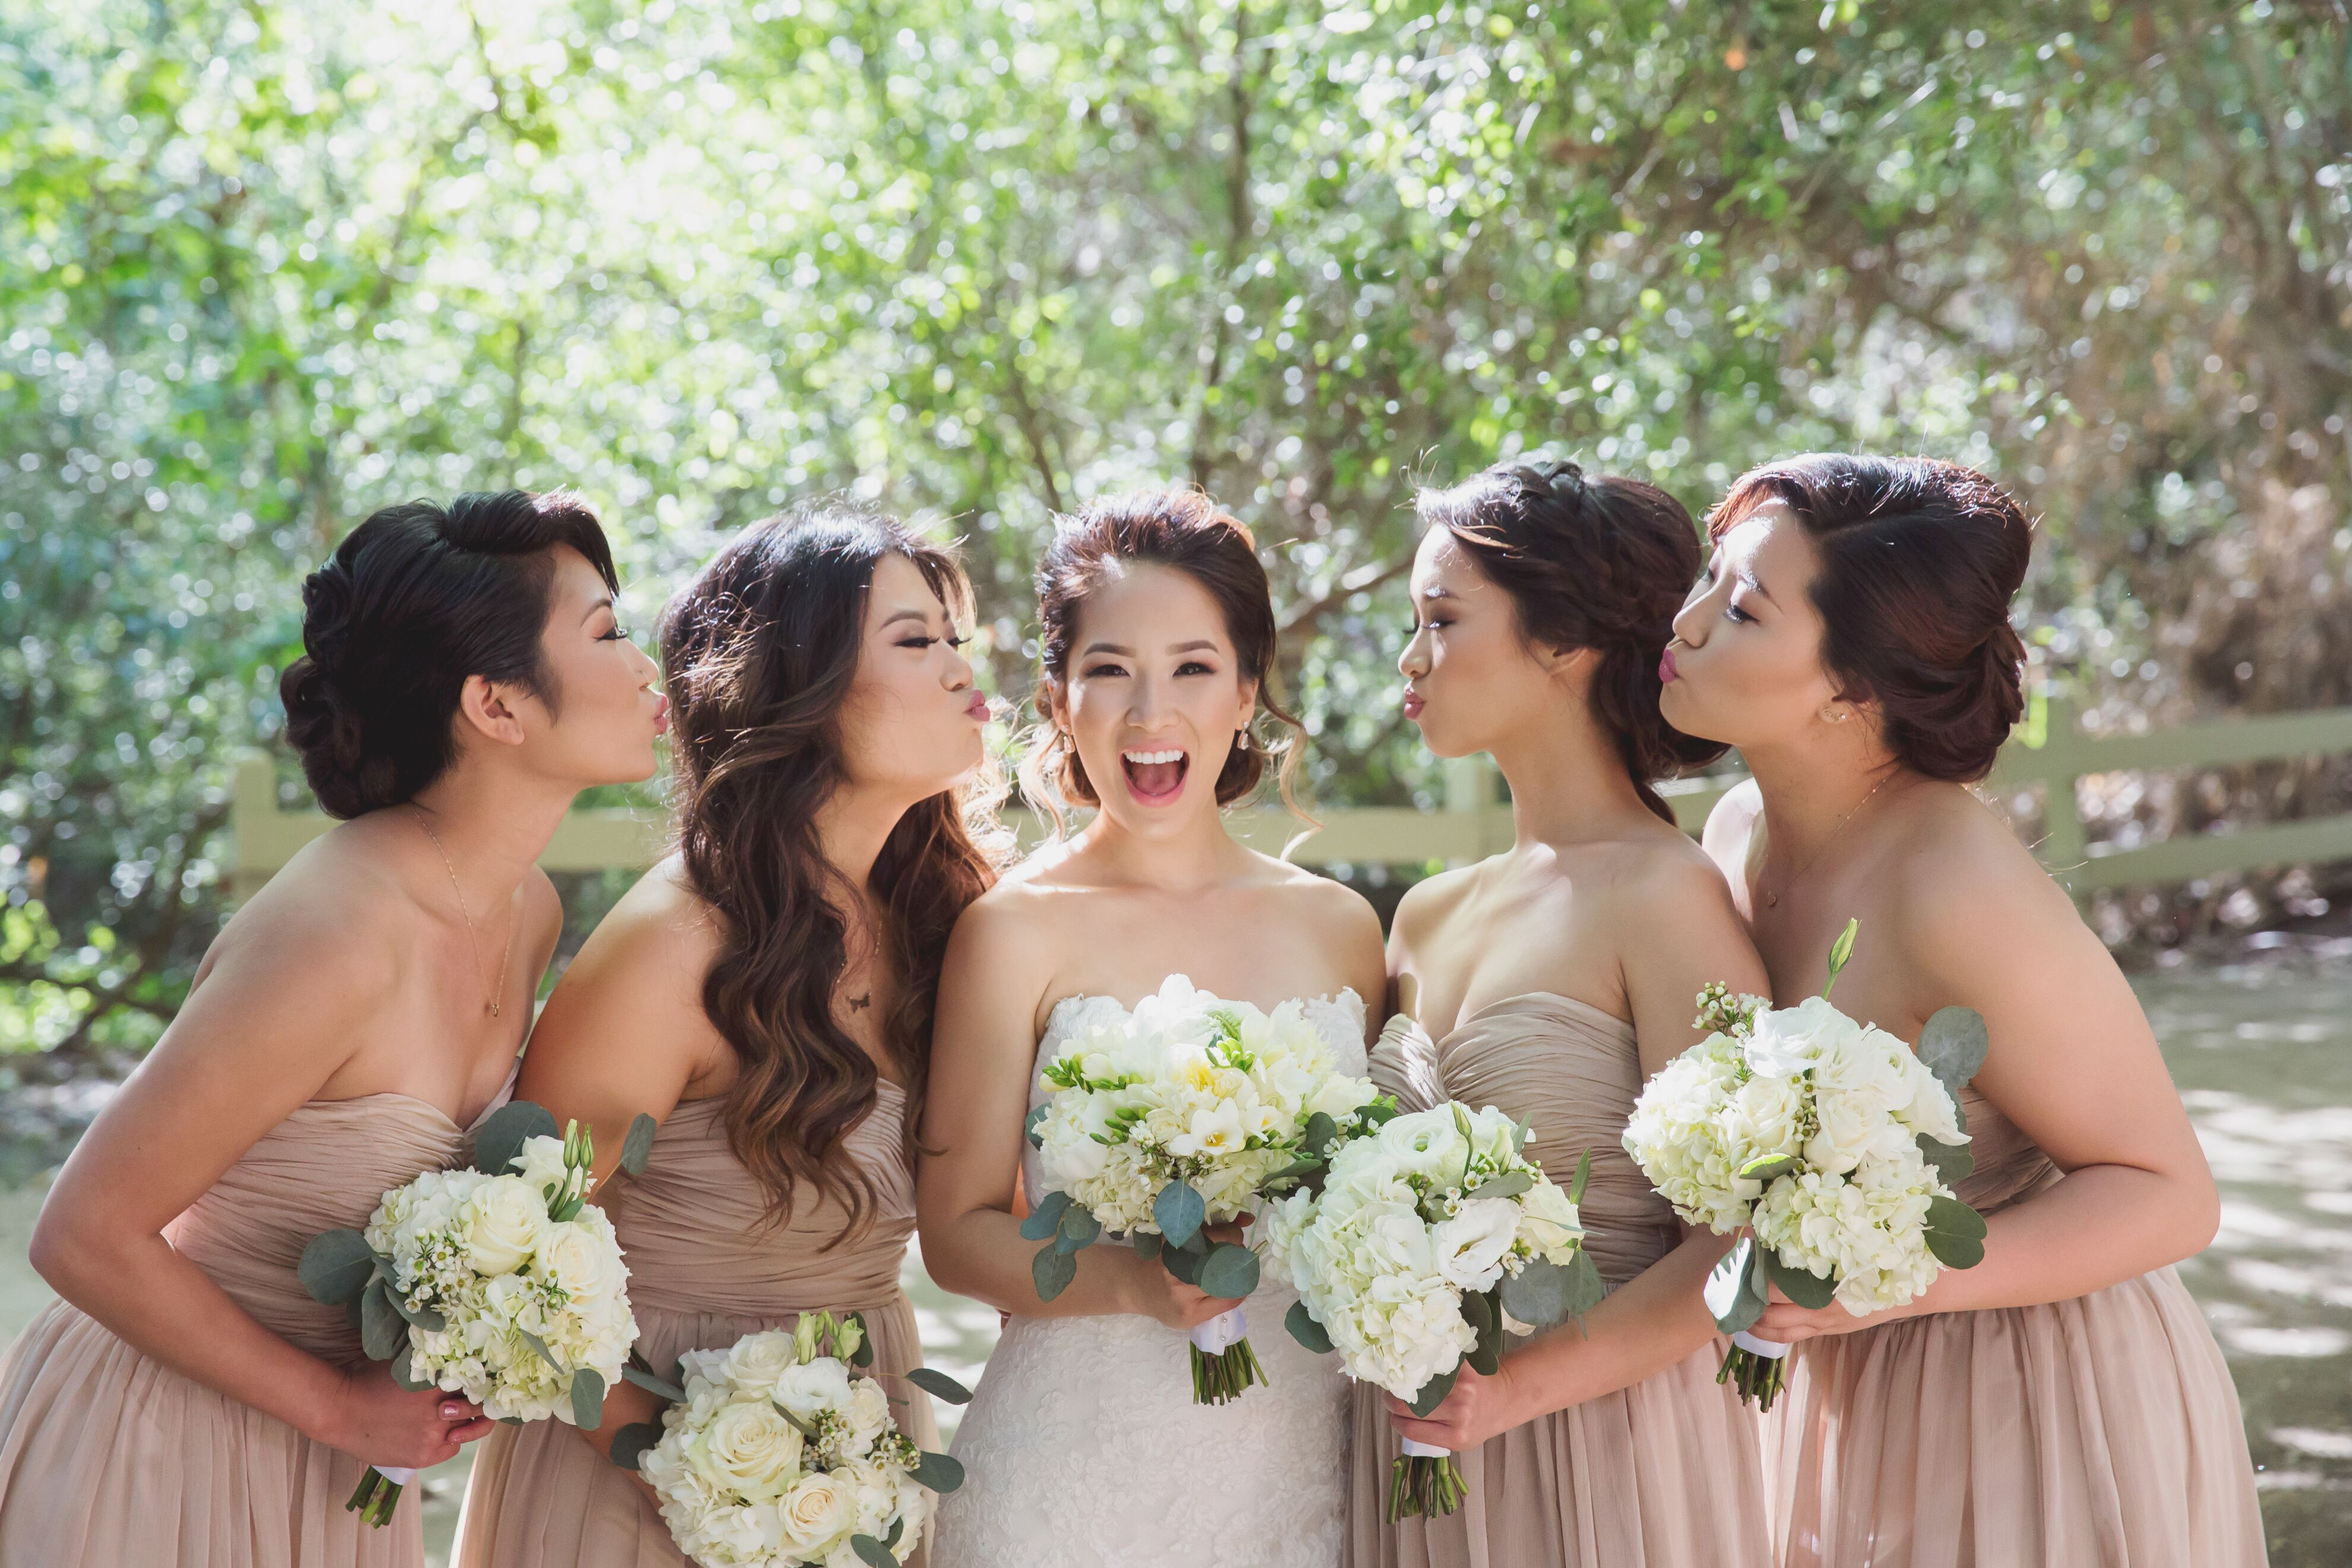 Affordable Day Of Wedding Coordinator Ideas 2018